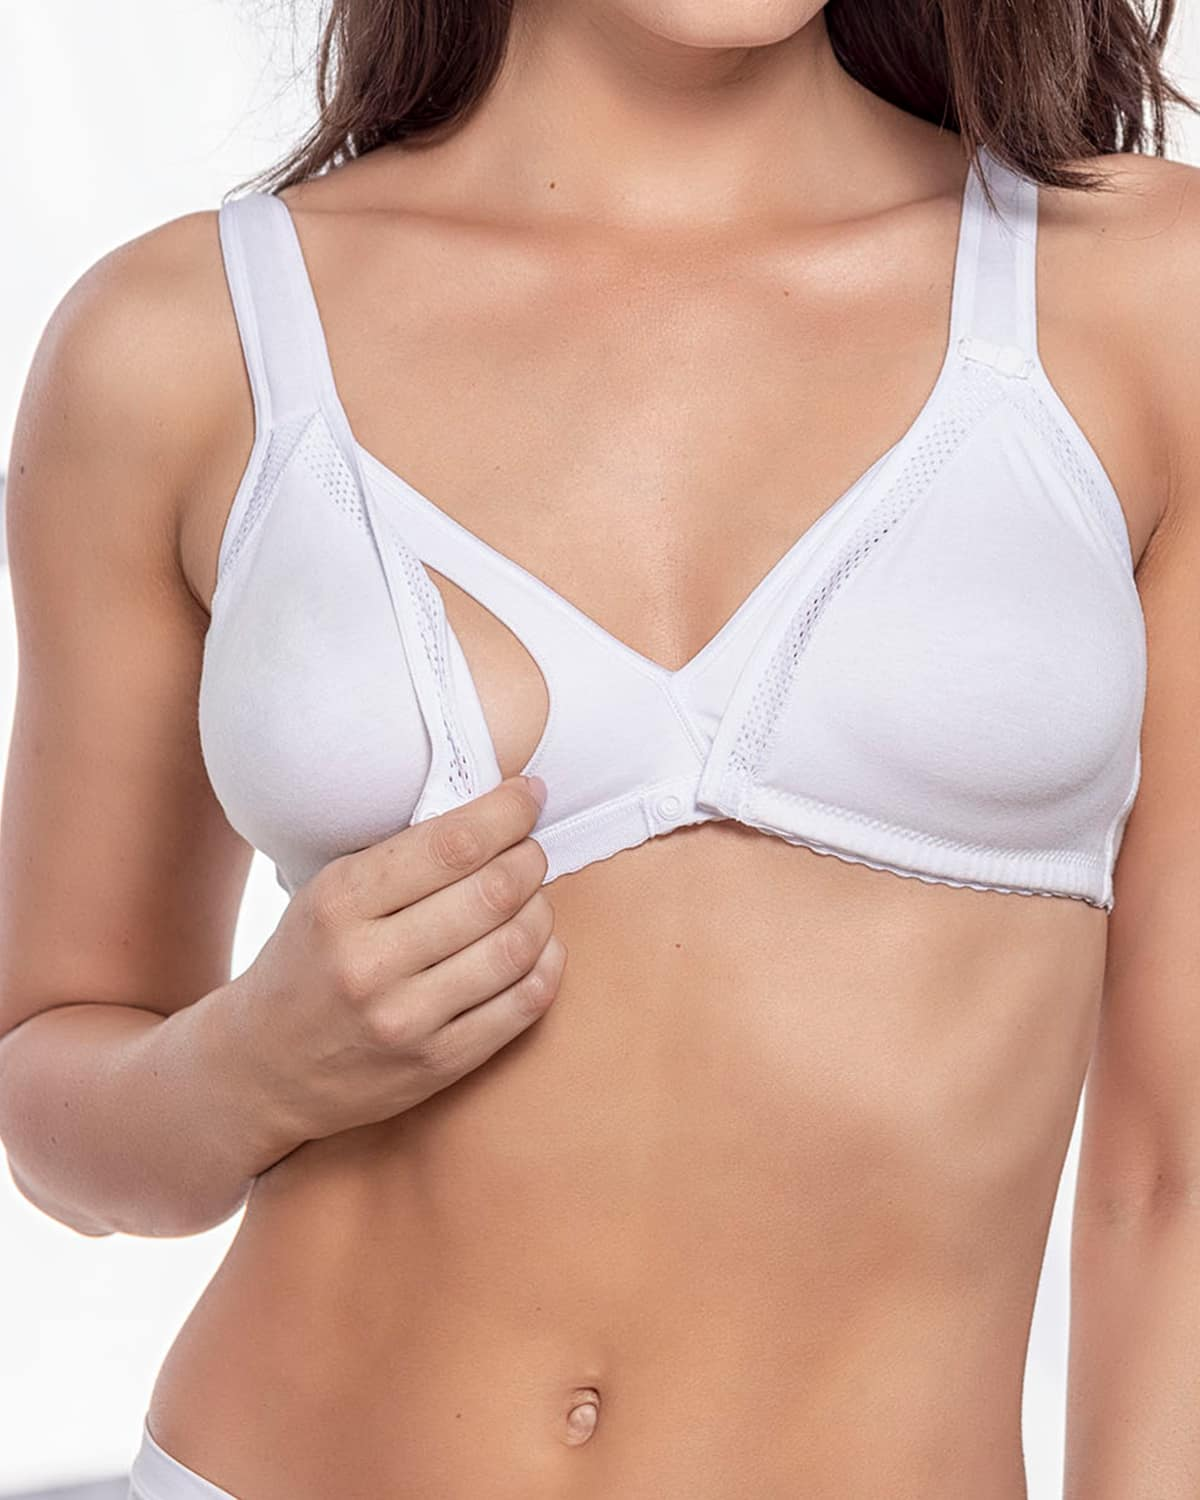 Nursing Bra with Feed Tracker